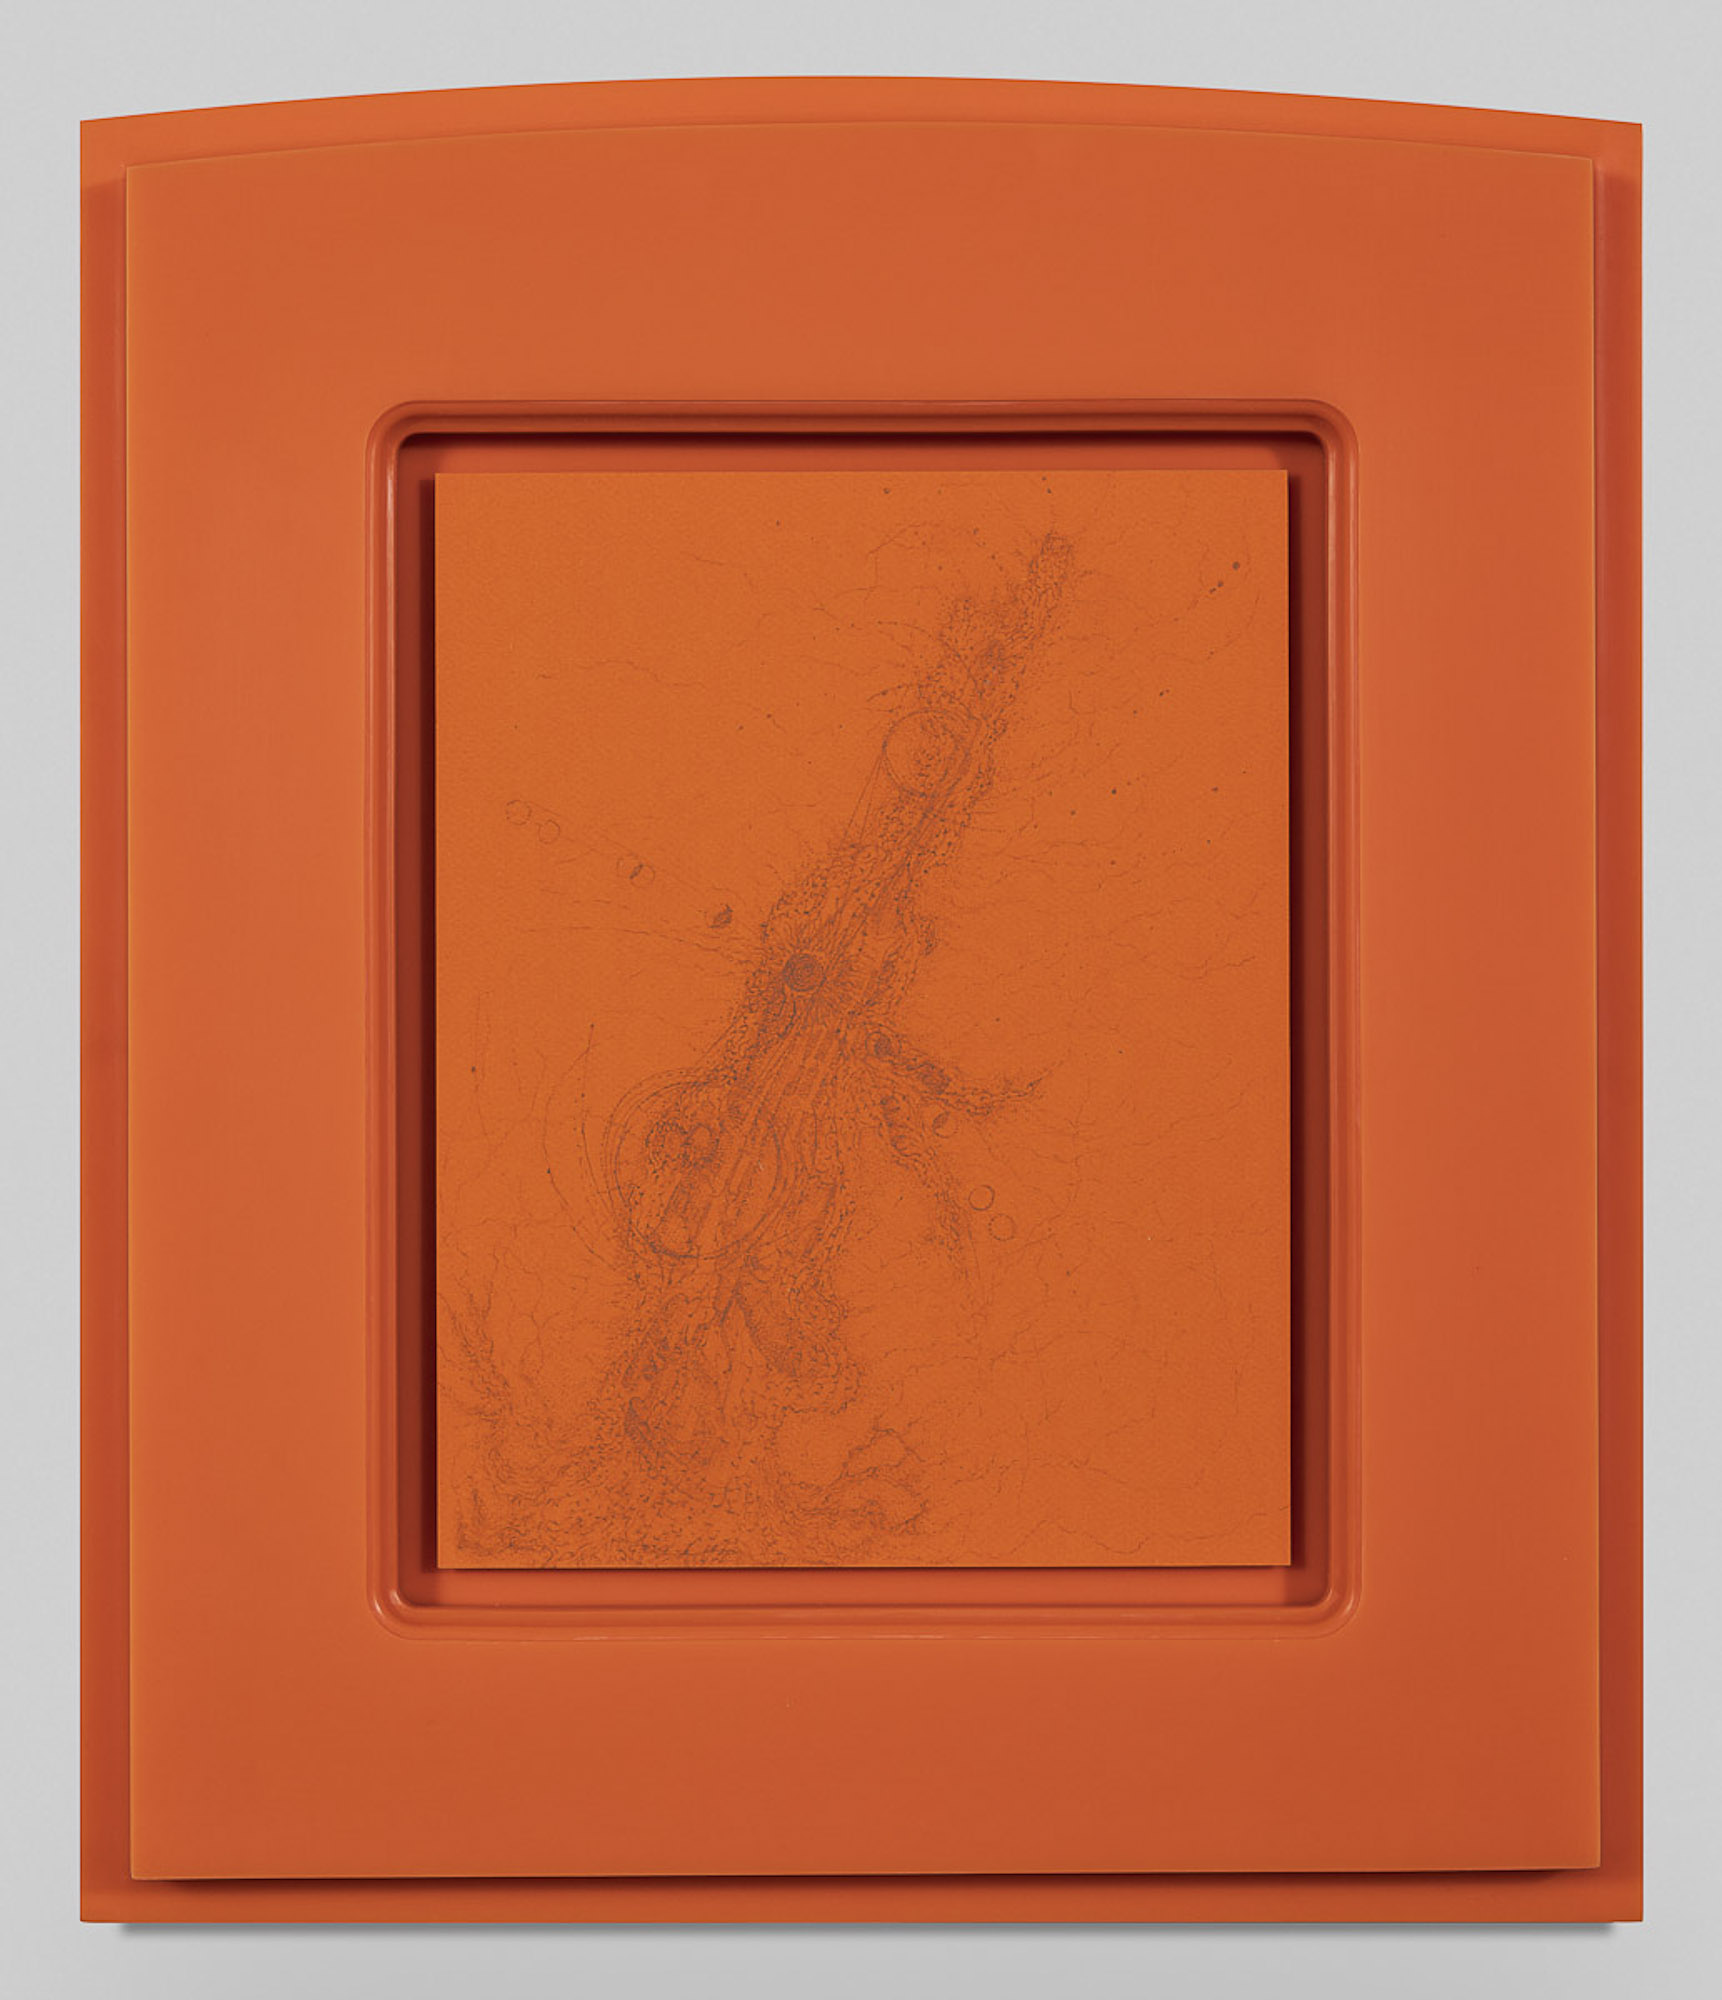 <i>Receiver</i>, 2019<br>Graphite on paper in ultra high molecular weight plastic frame<br>21 1/8 x 17 7/8 x 1 3/8 inches (53.7 x 45.4 x 3.5 cm) framed